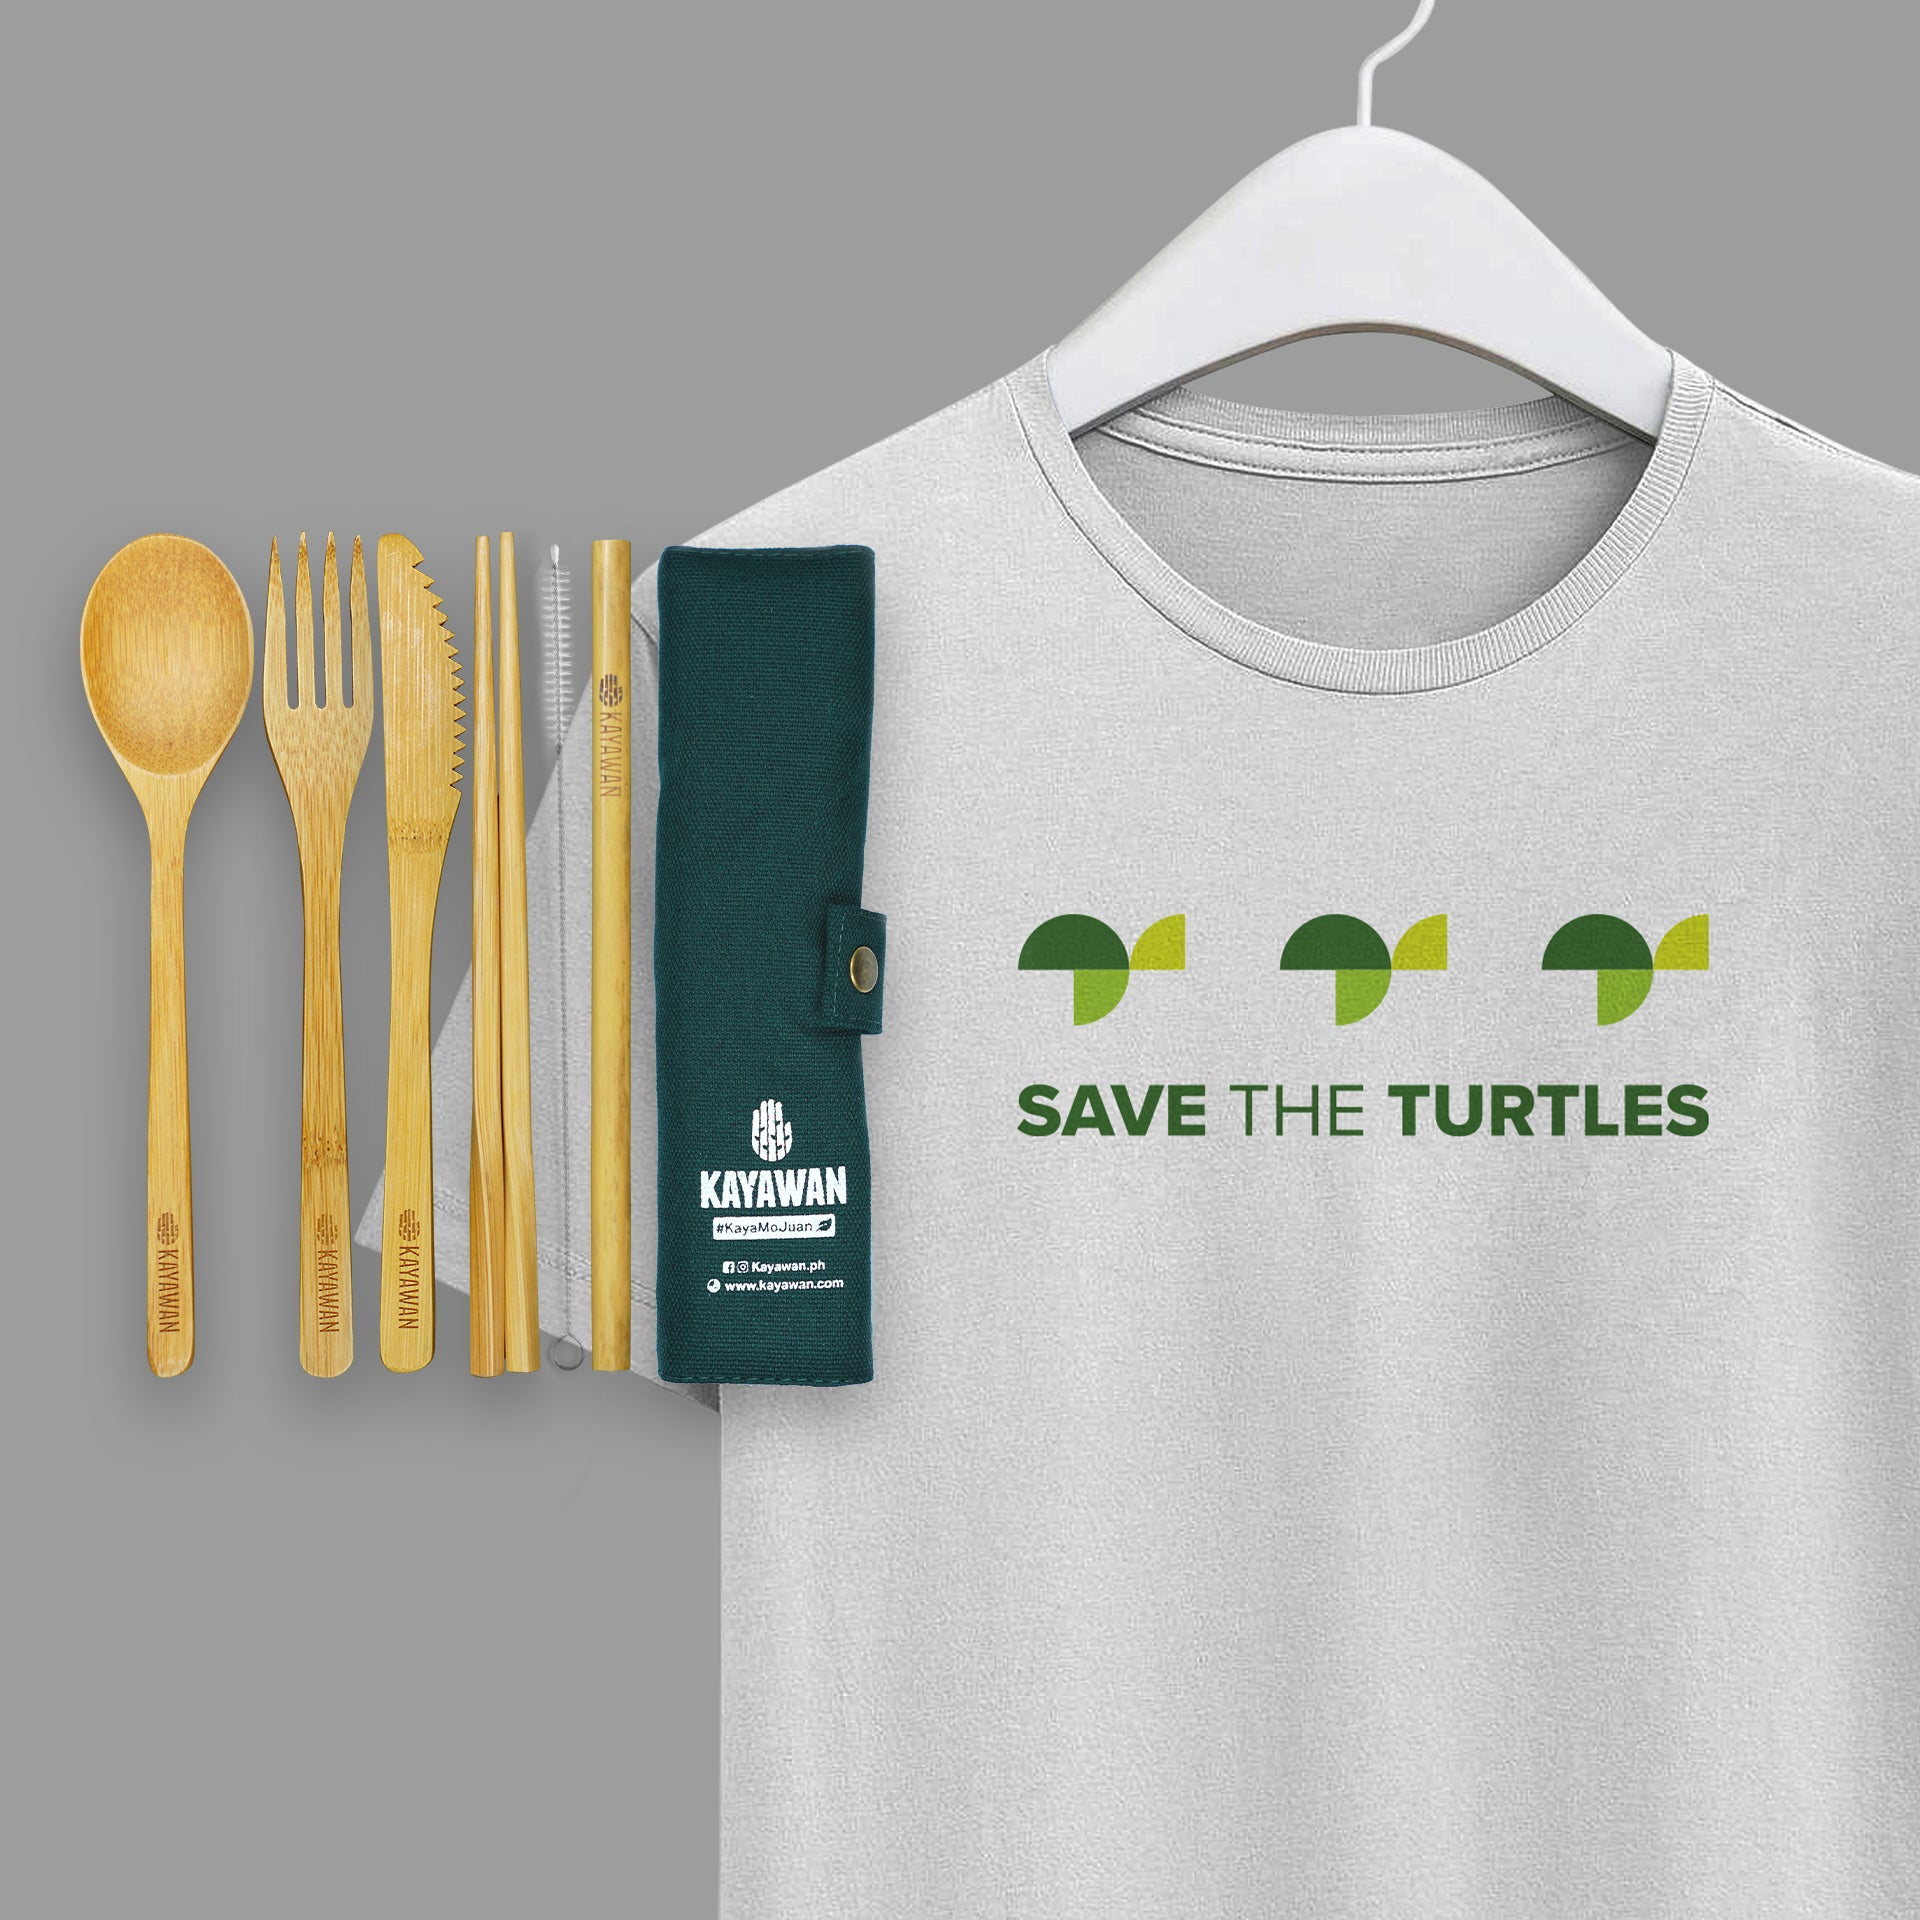 Kayawan Tshirt and Cutlery Set